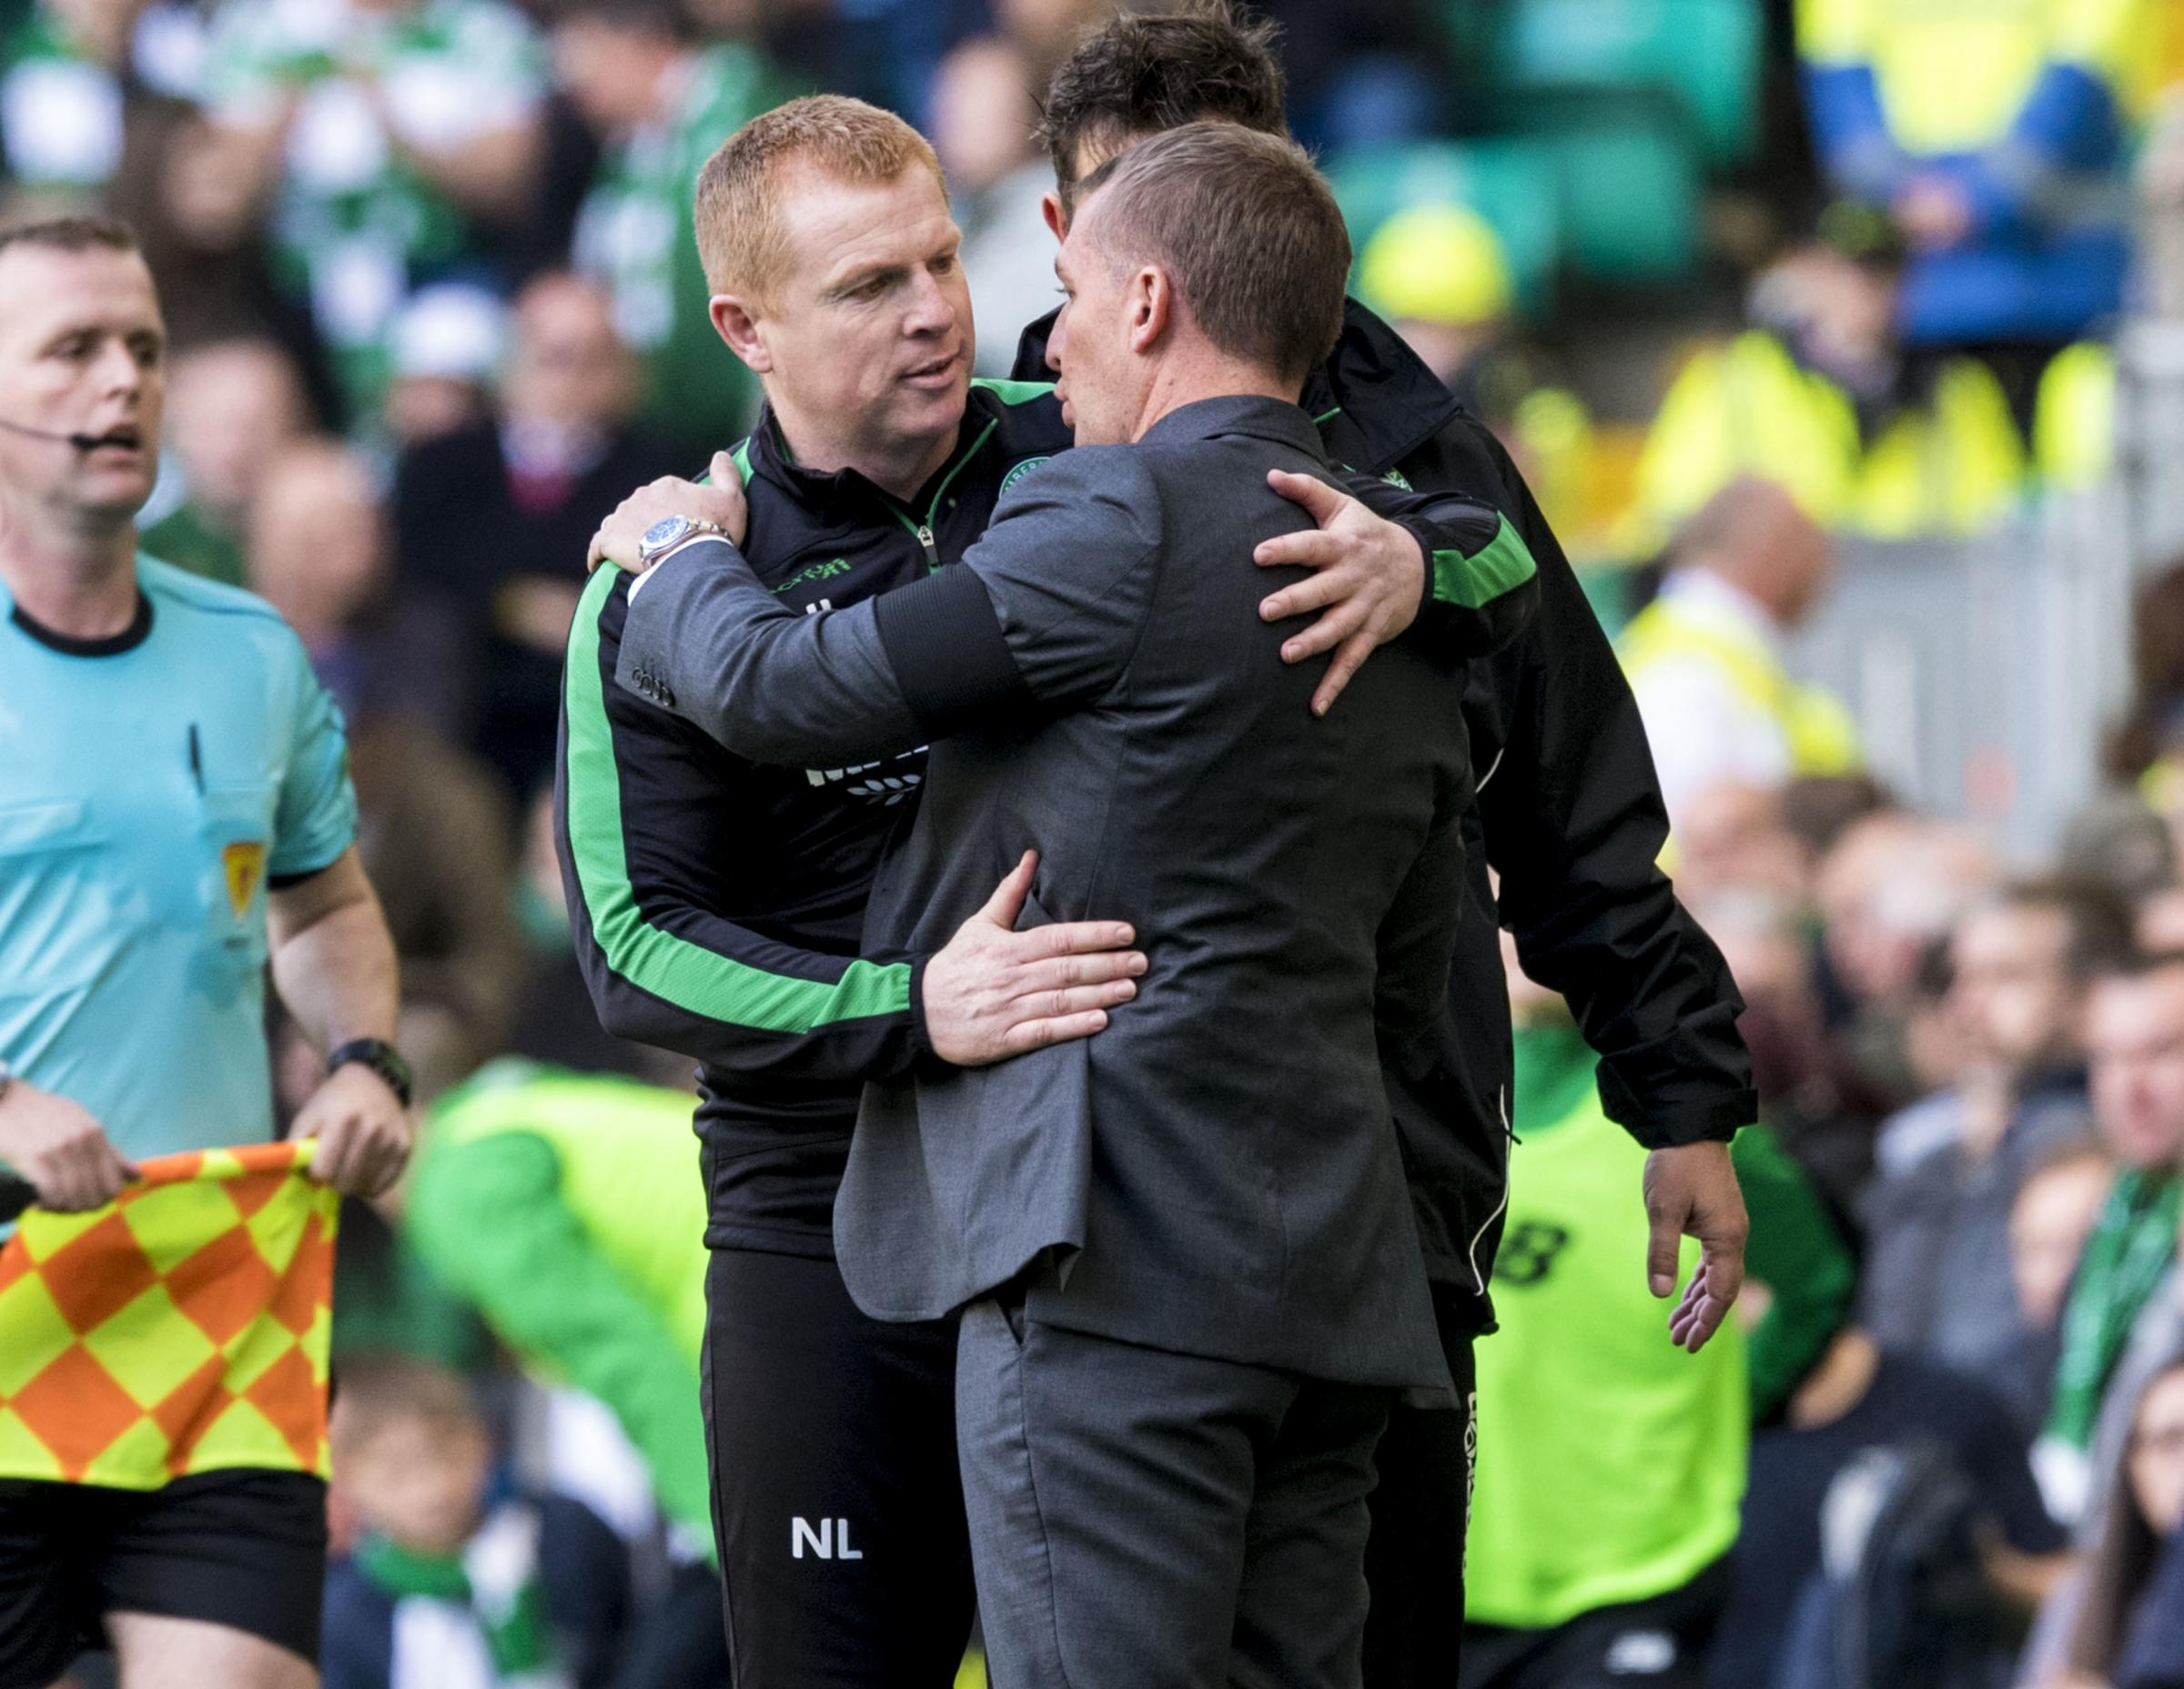 Neil Lennon, in his tracksuit, is a very different character to Brendan Rodgers with his designer suits